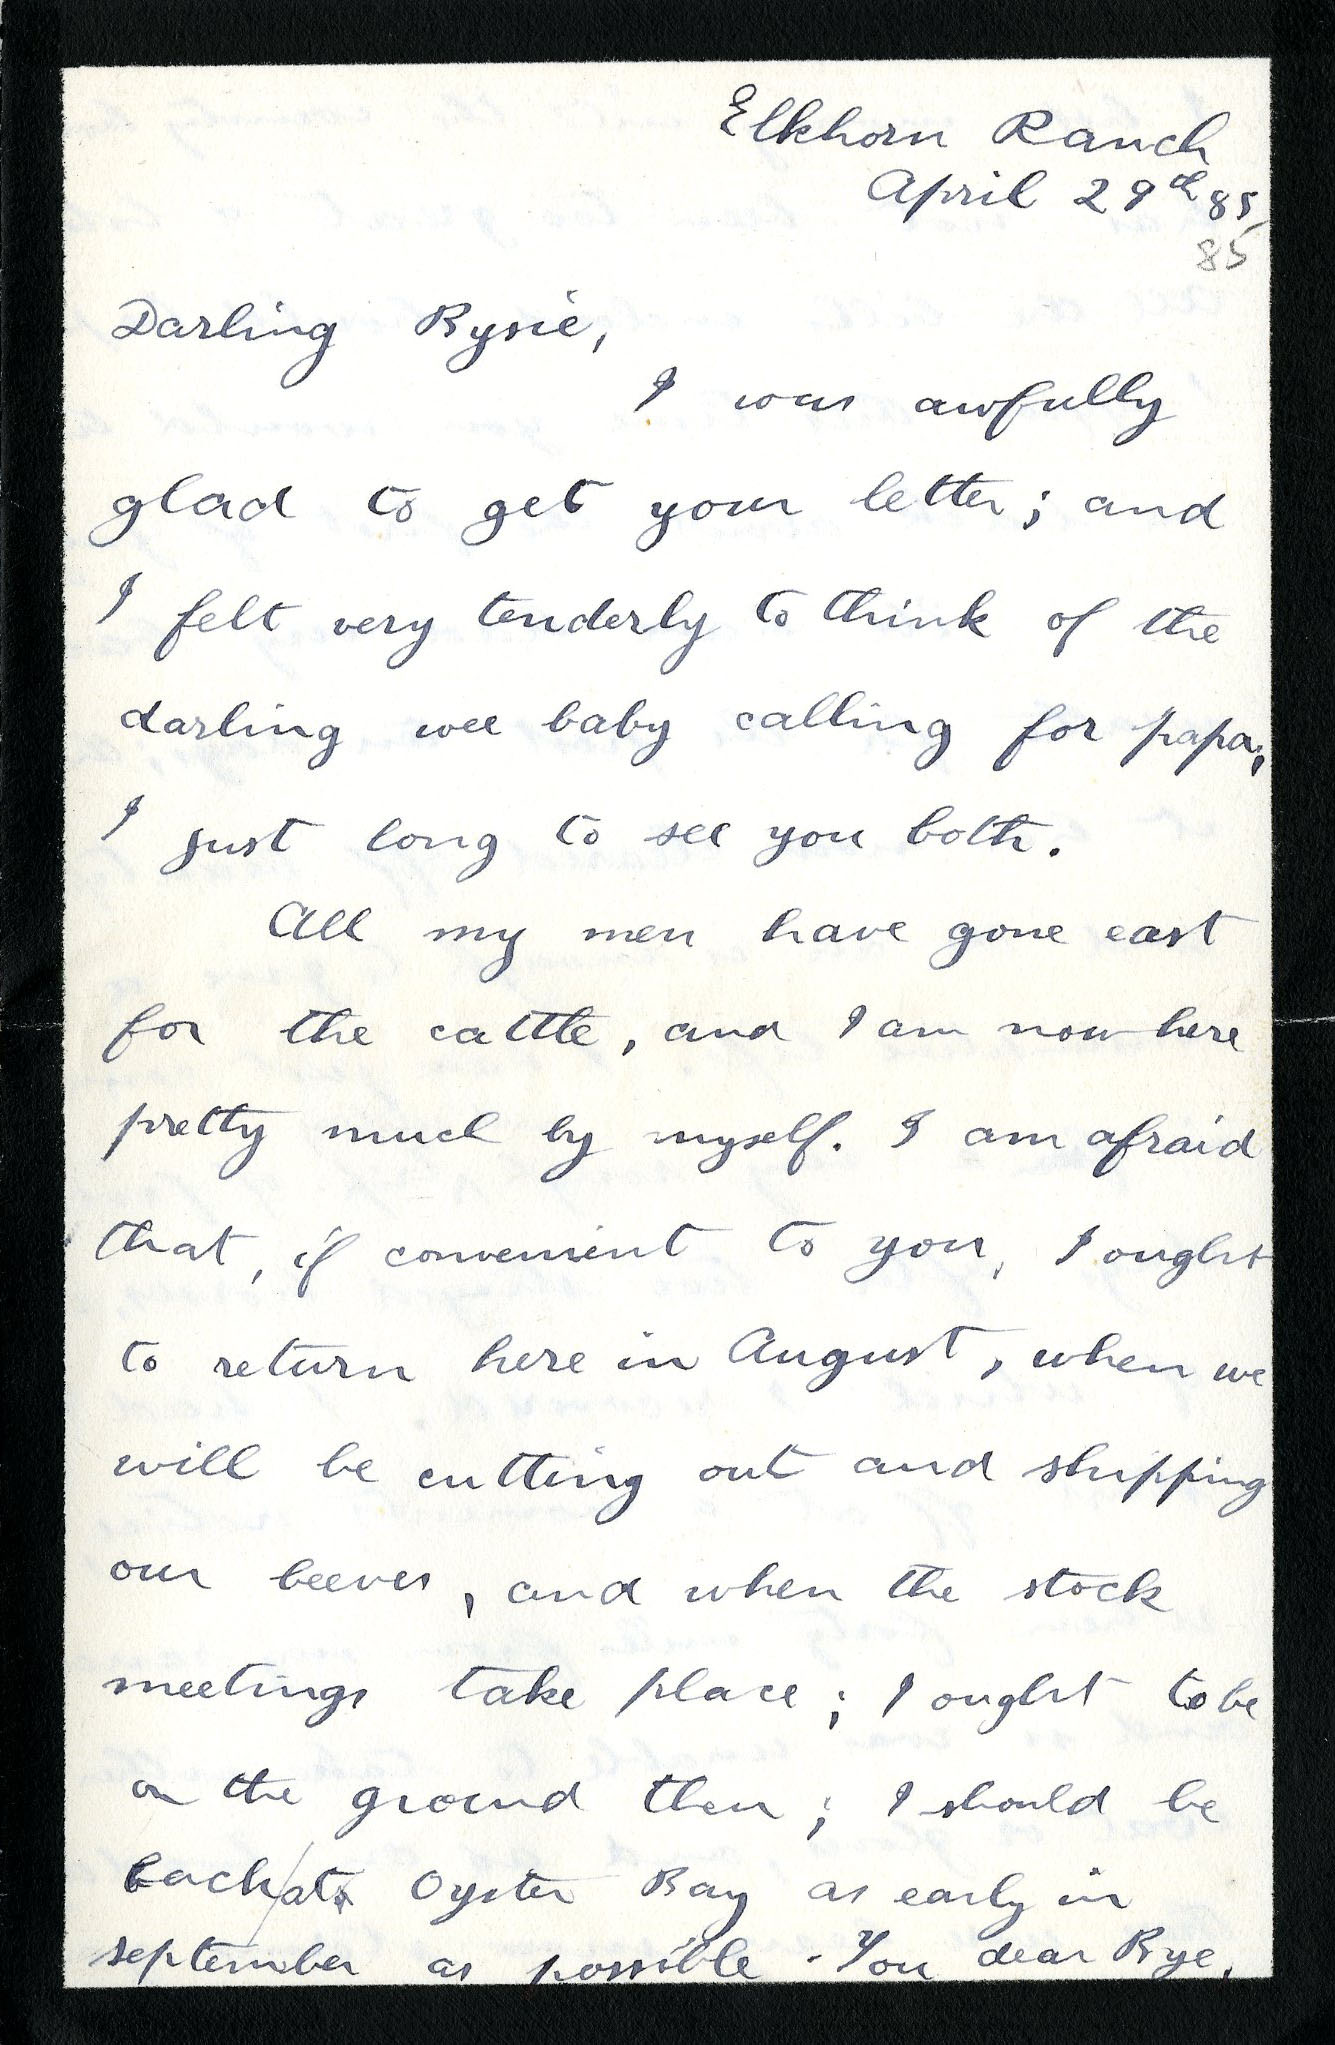 R letter to Anna Roosevelt Cowles; Elkhorn Ranch, April 29, 1885